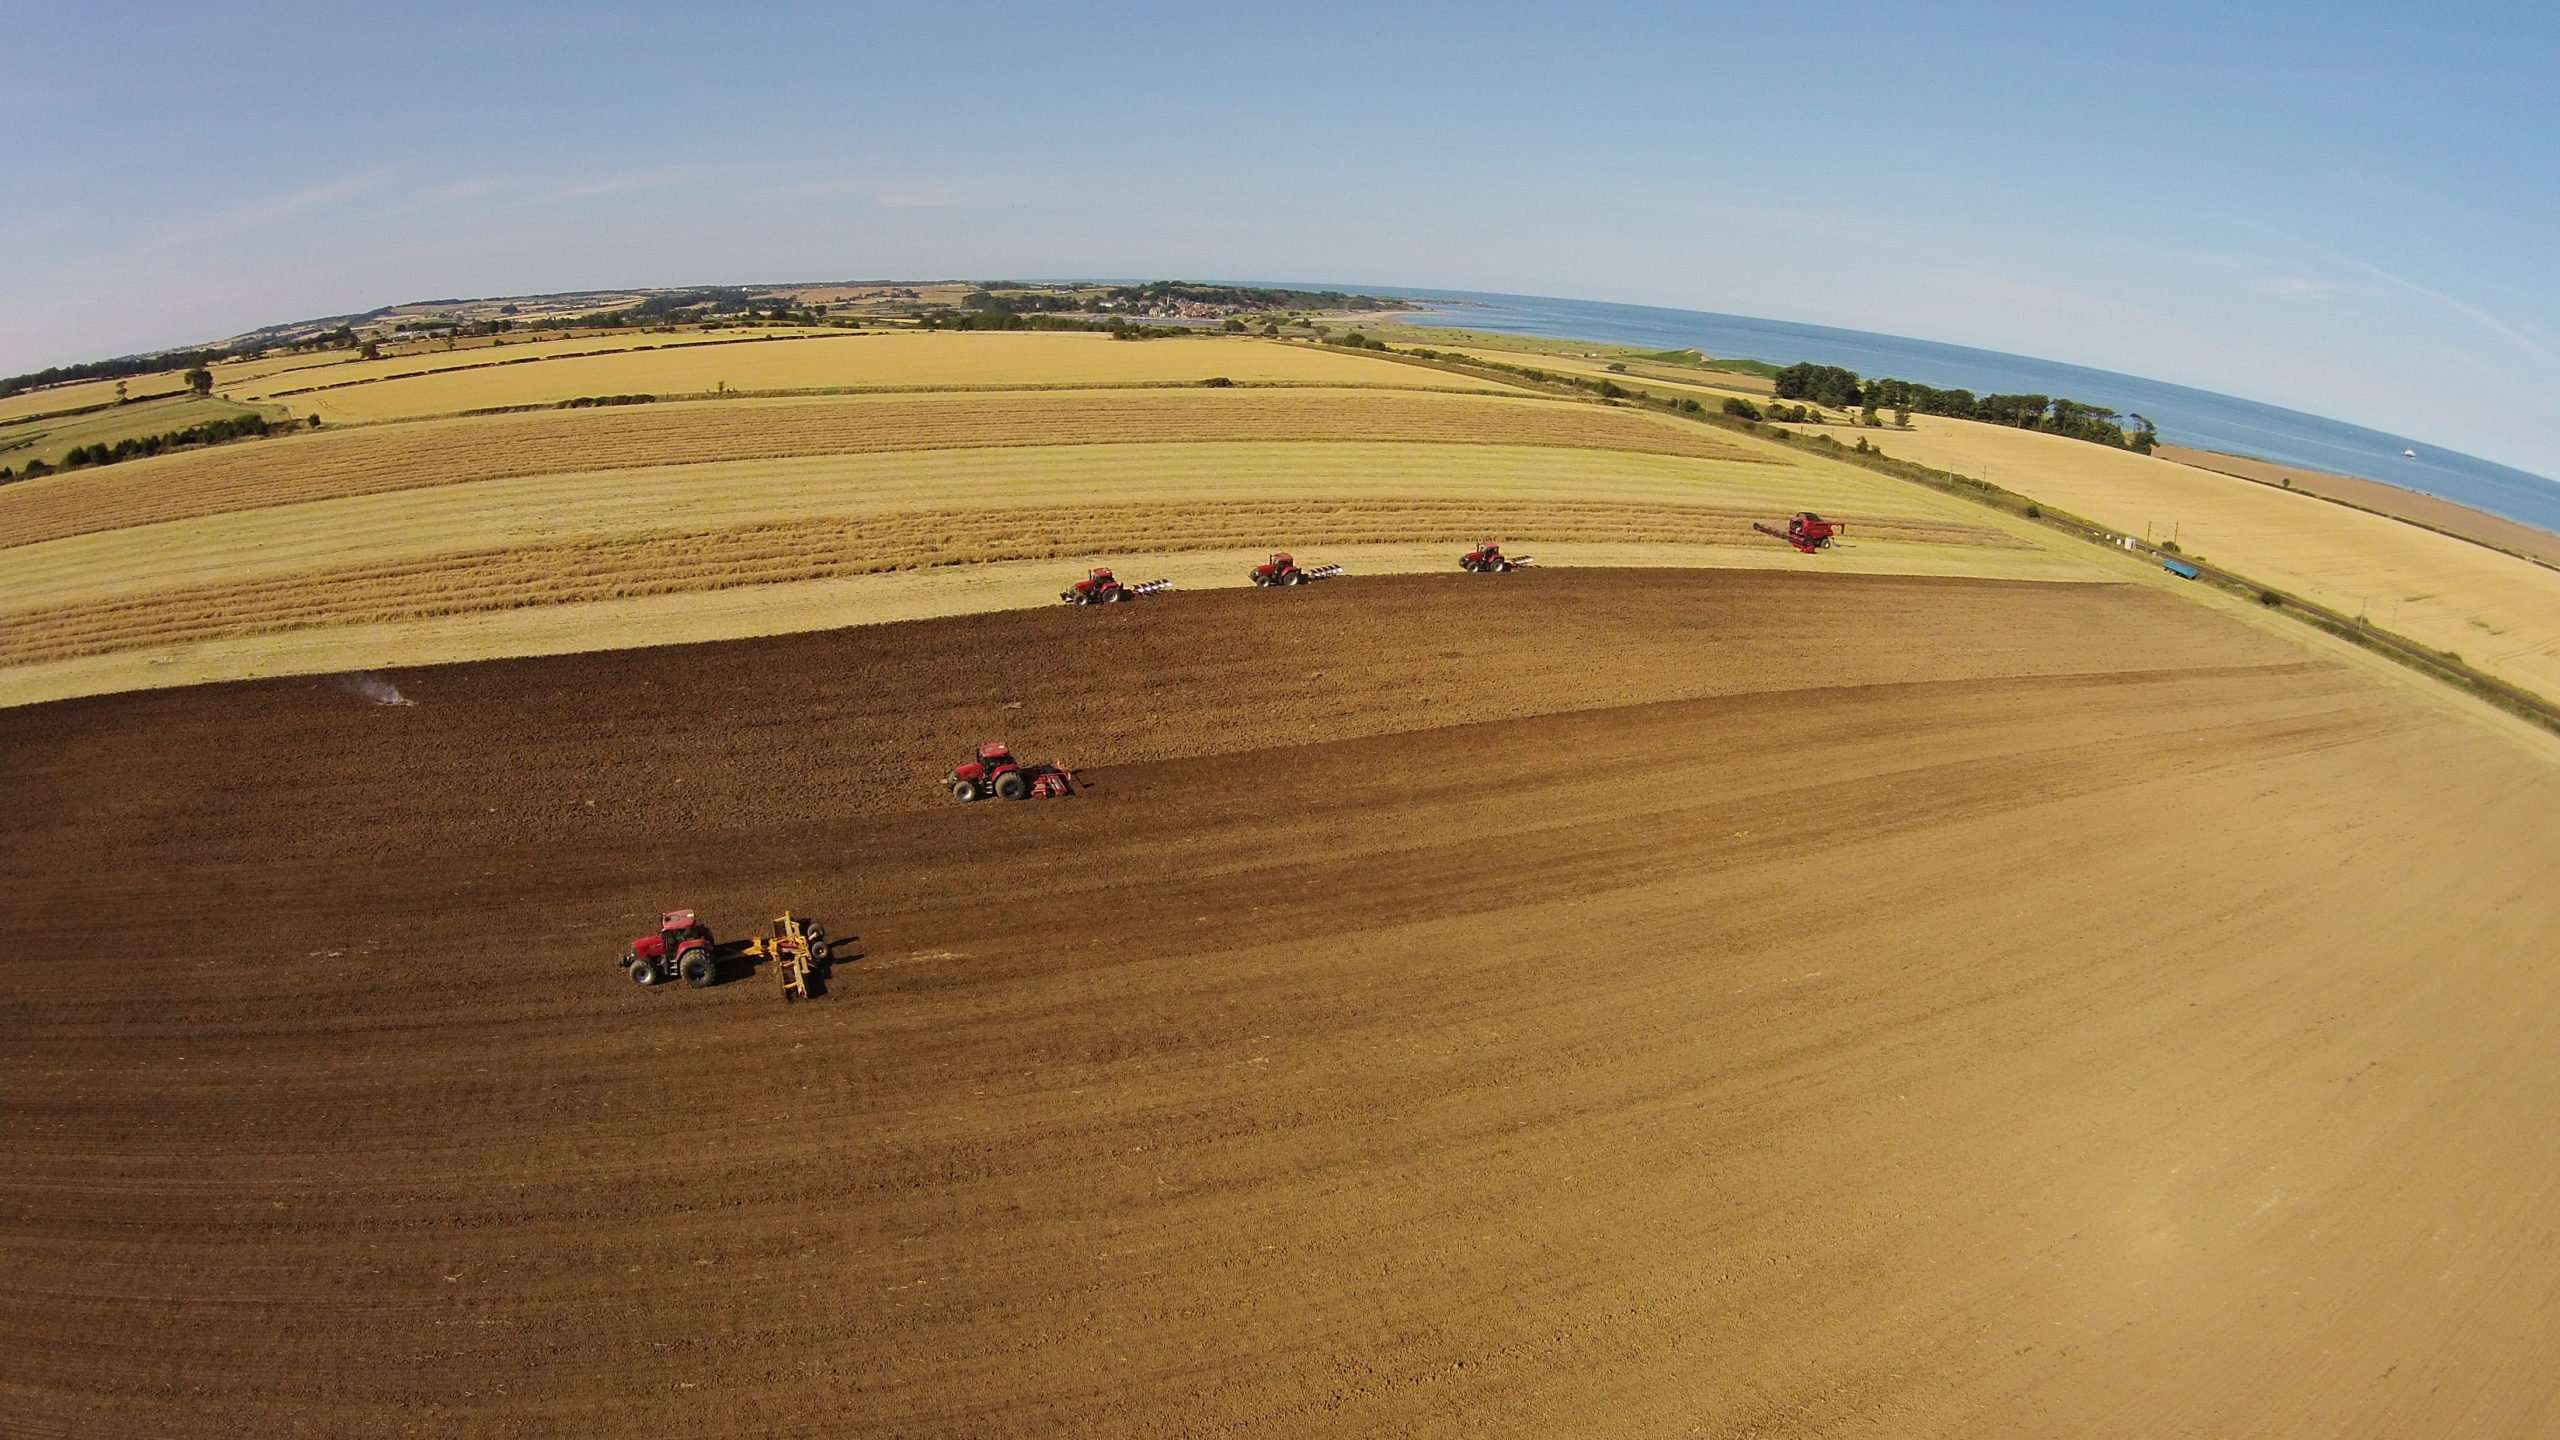 HARVEST 2015: COMBINING OSR, PLOUGHING AND ROLLING TO PREPARE THE LAND FOR SOWING NEXT YEAR'S WHEAT.